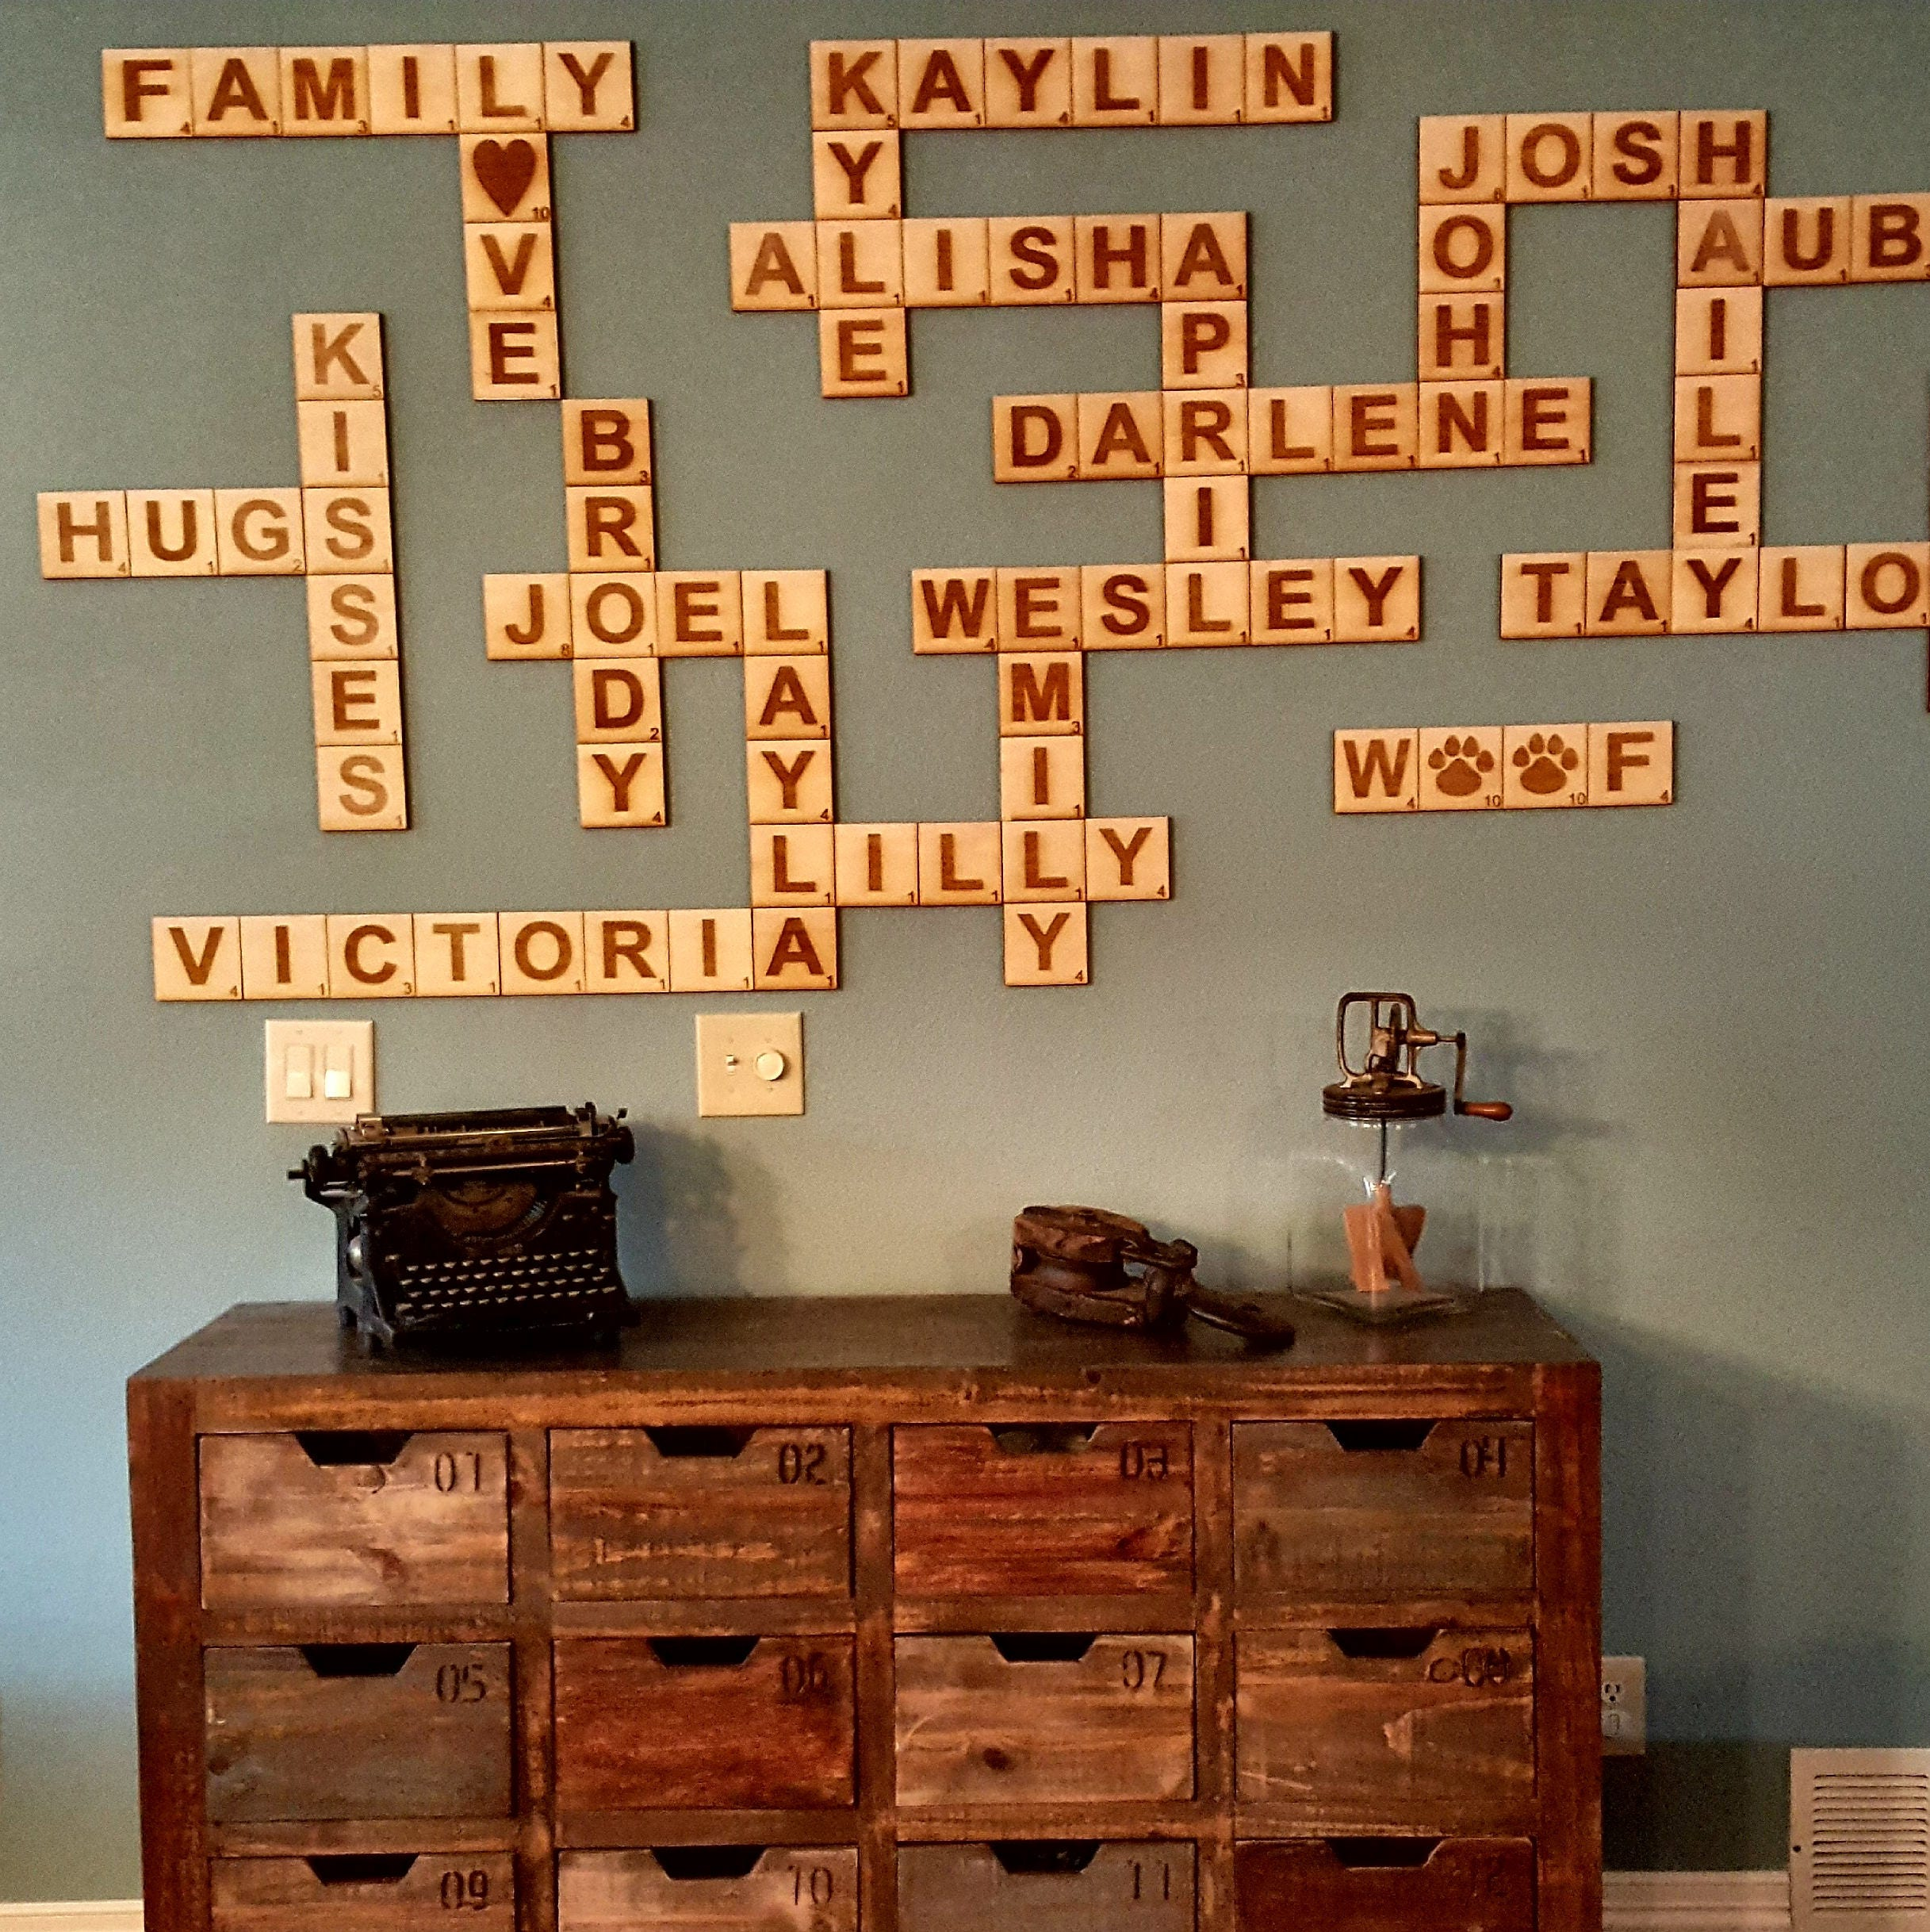 Scrabble Wall Tiles, Scrabble Letters, Scrabble Tiles, Scrabble Wall Art,  Family Scrabble Tiles